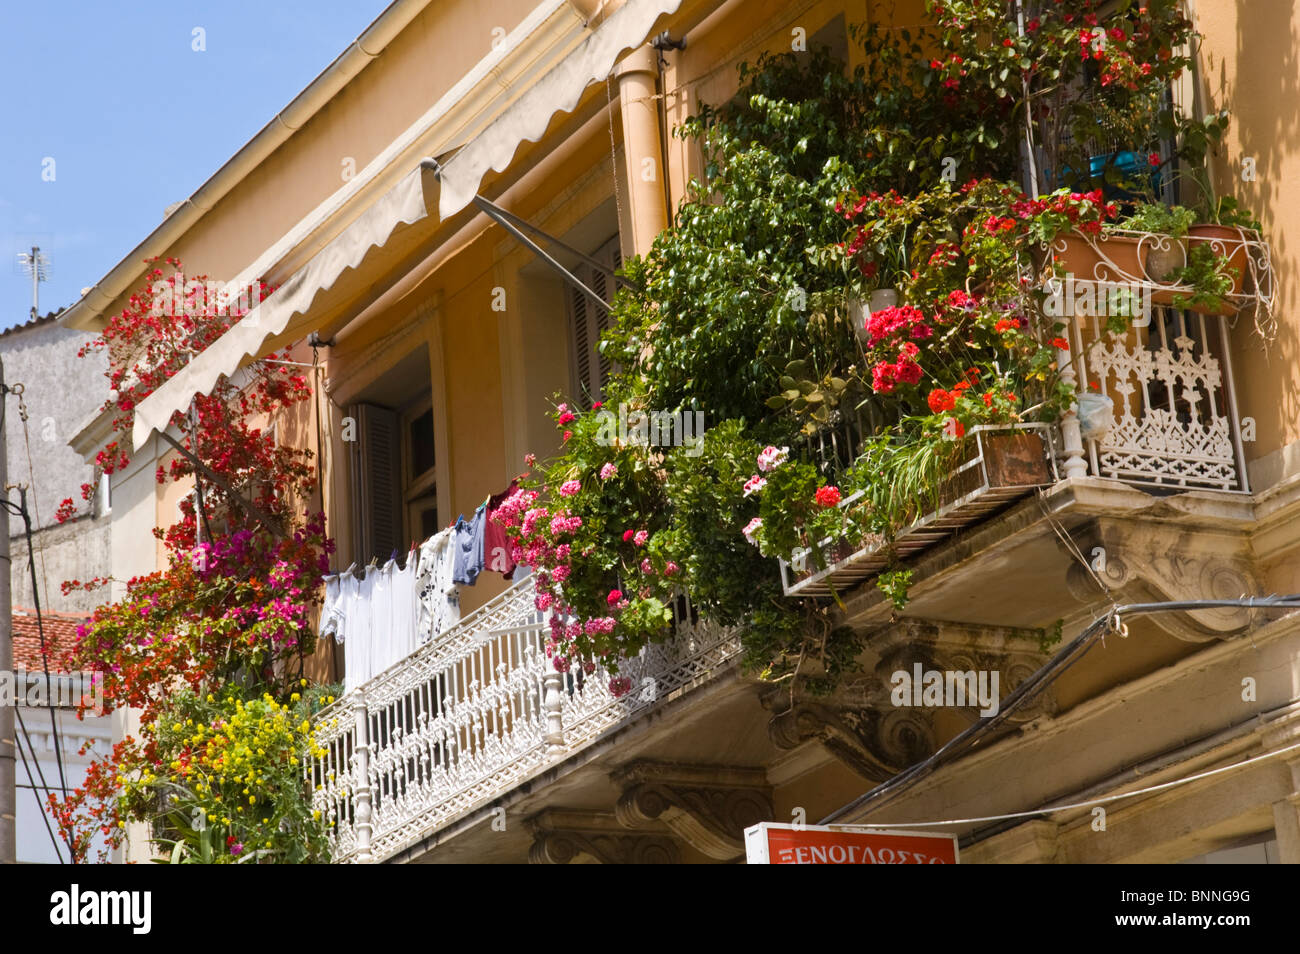 Traditional Style Apartment Building With Balcony Plants